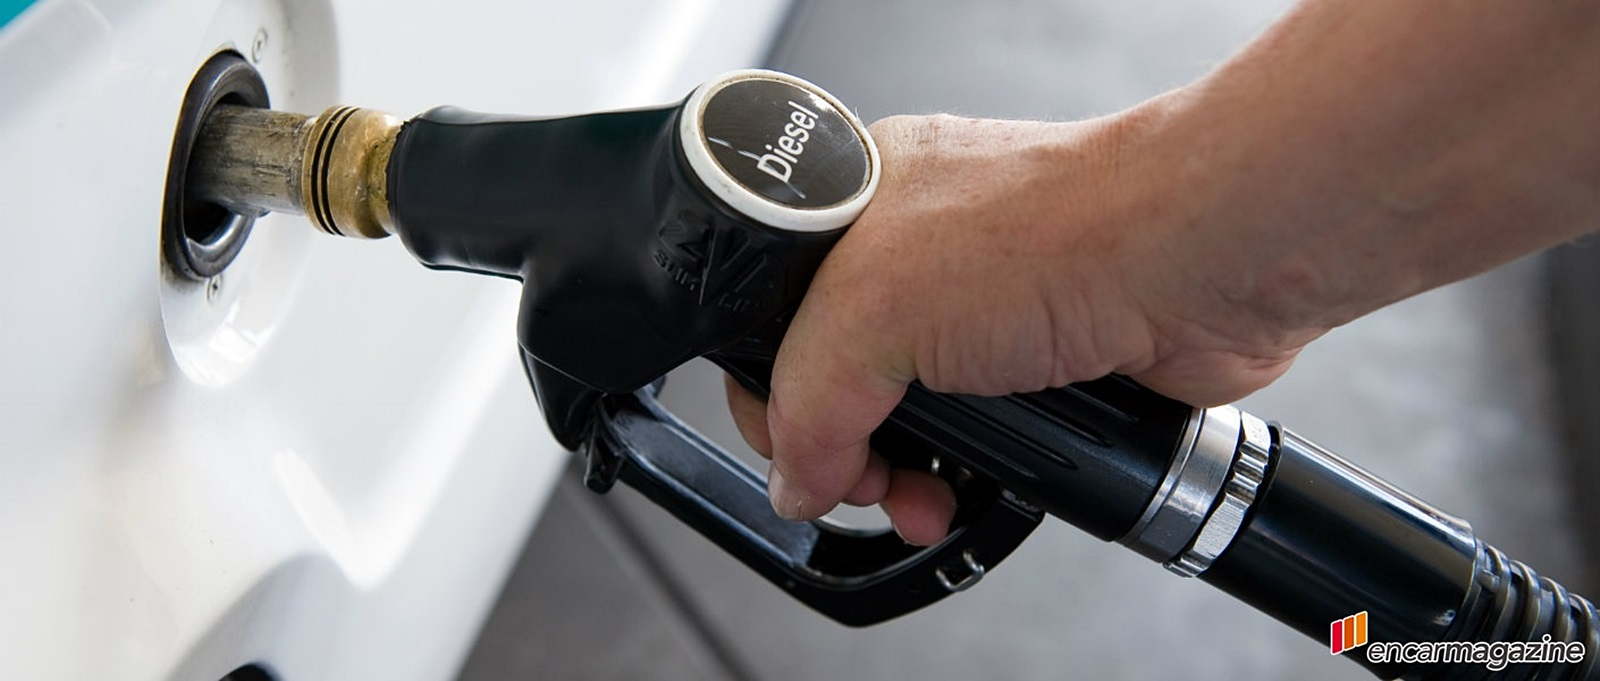 diesel-gas-stations-glenview-ilr16001